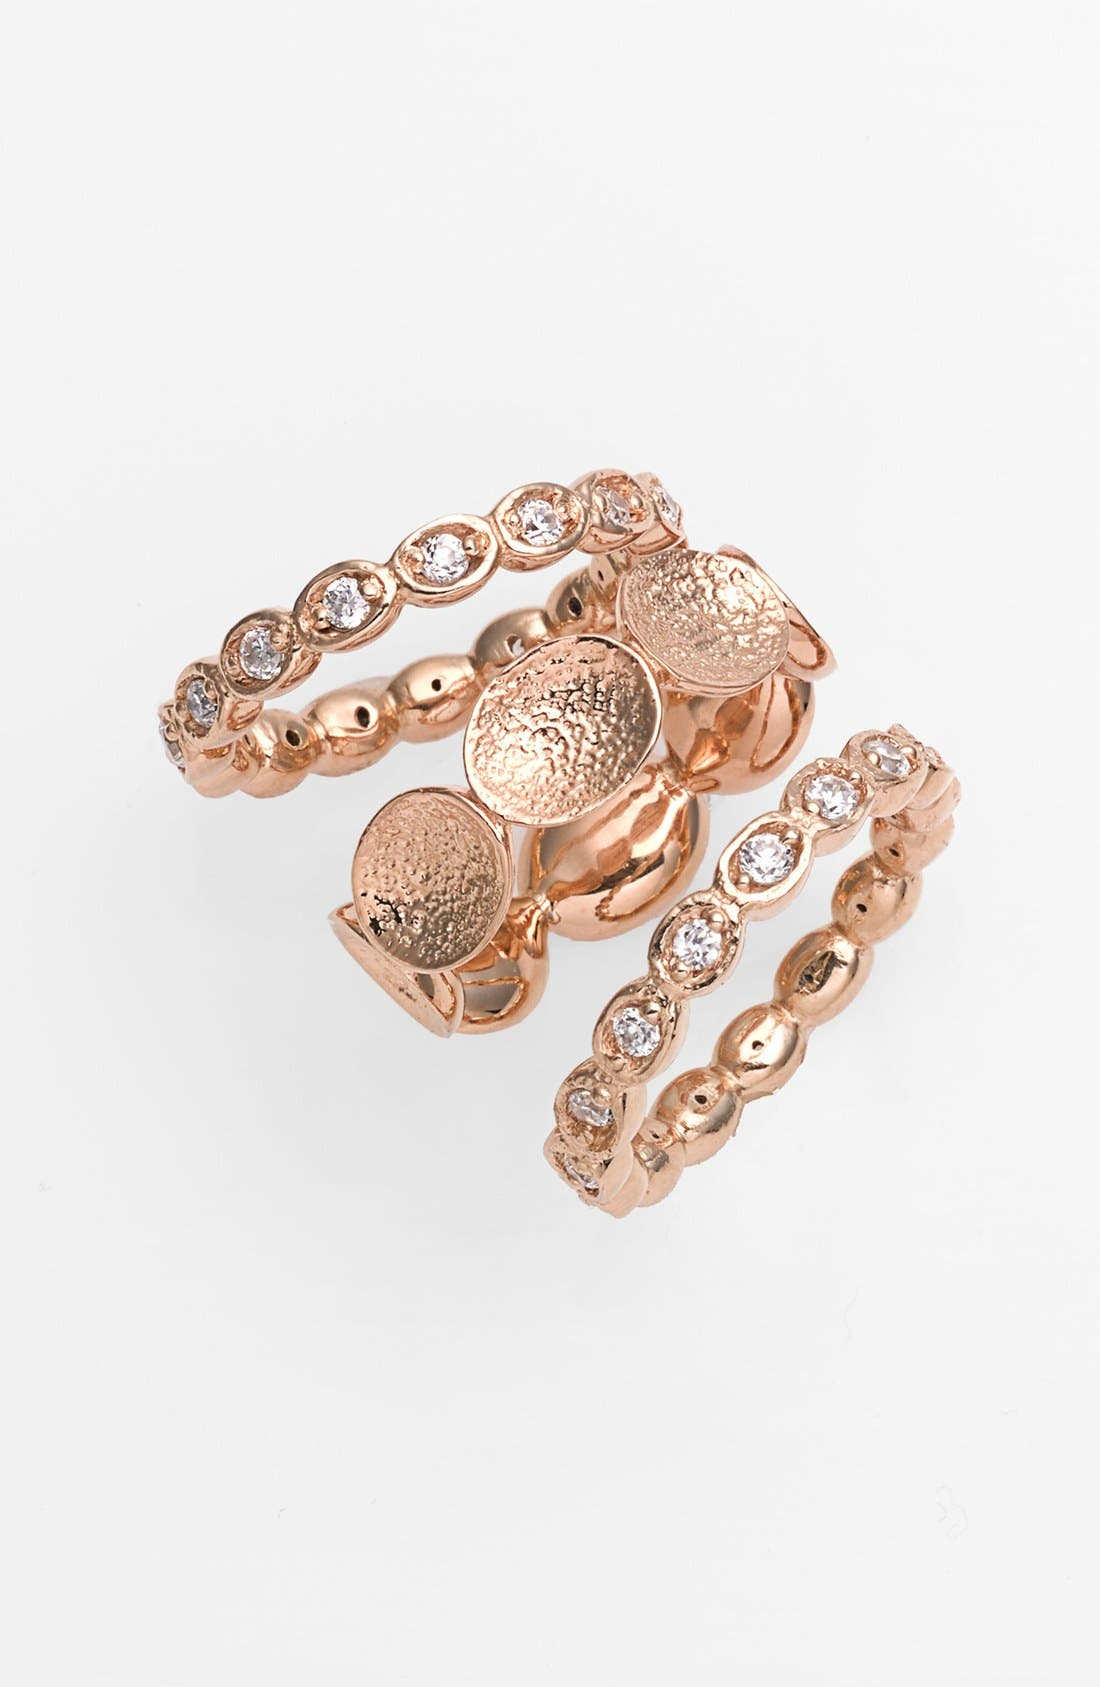 Alternate Image 1 Selected - Melinda Maria 'Odette' Pod Stackable Rings (Set of 3)